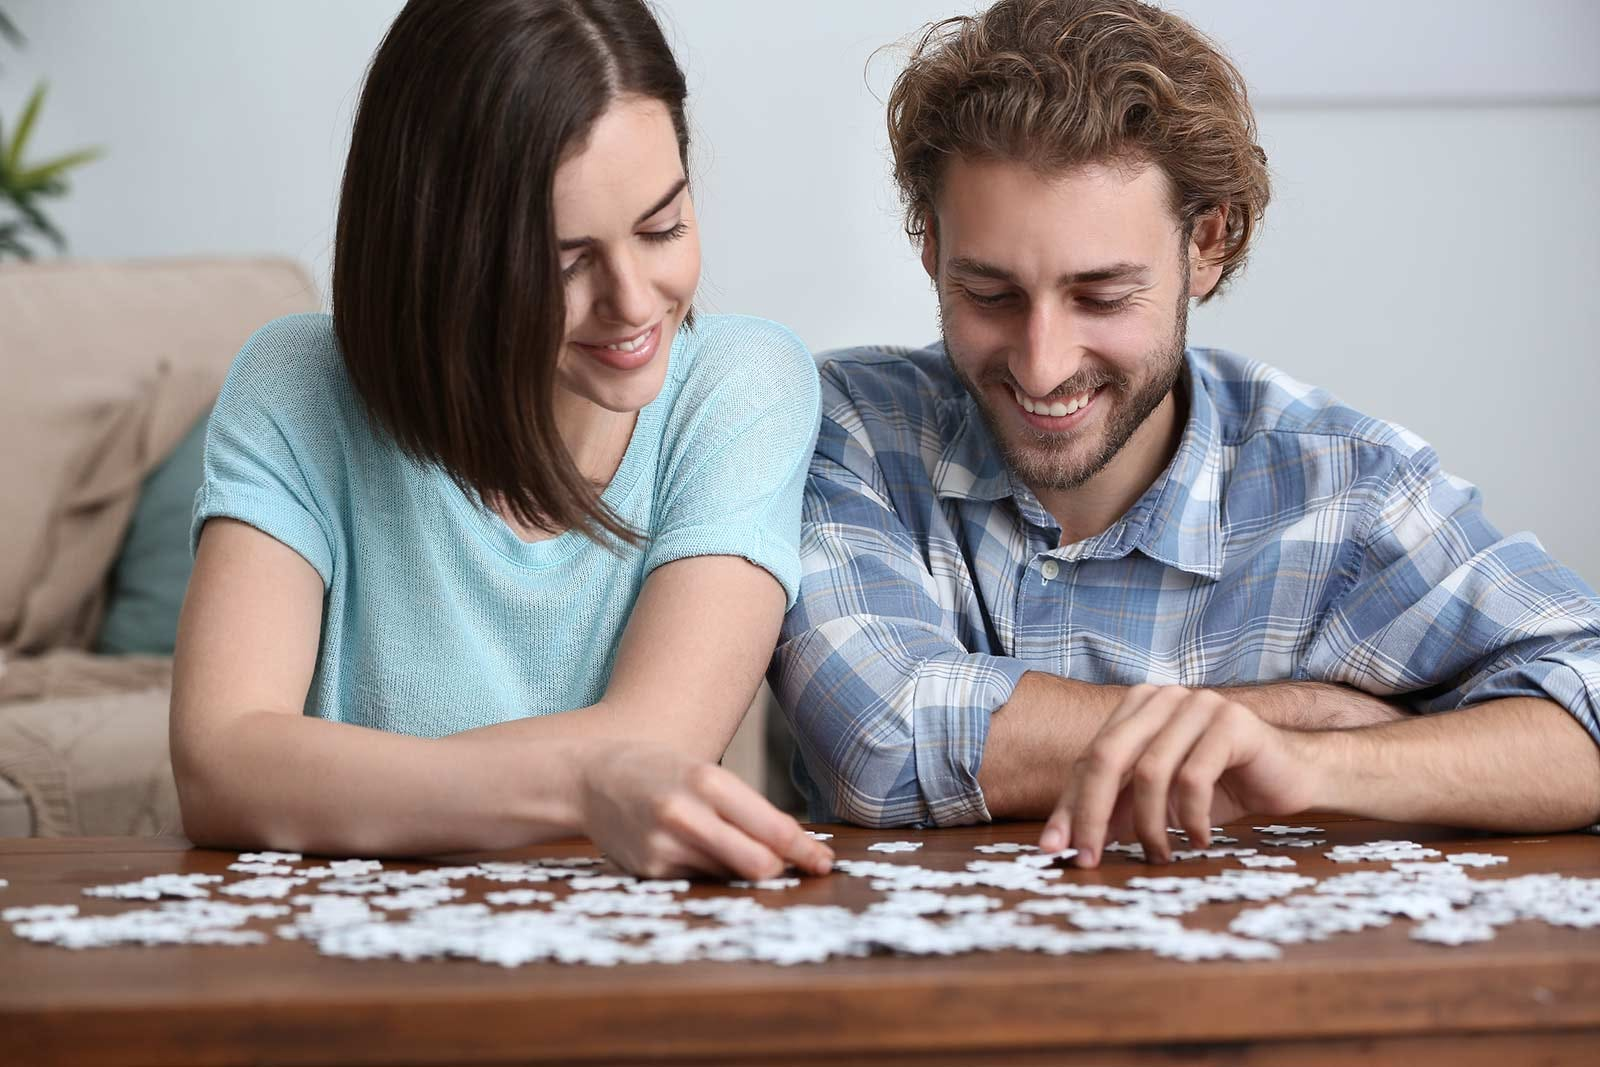 A man and woman working on a jigsaw puzzle.